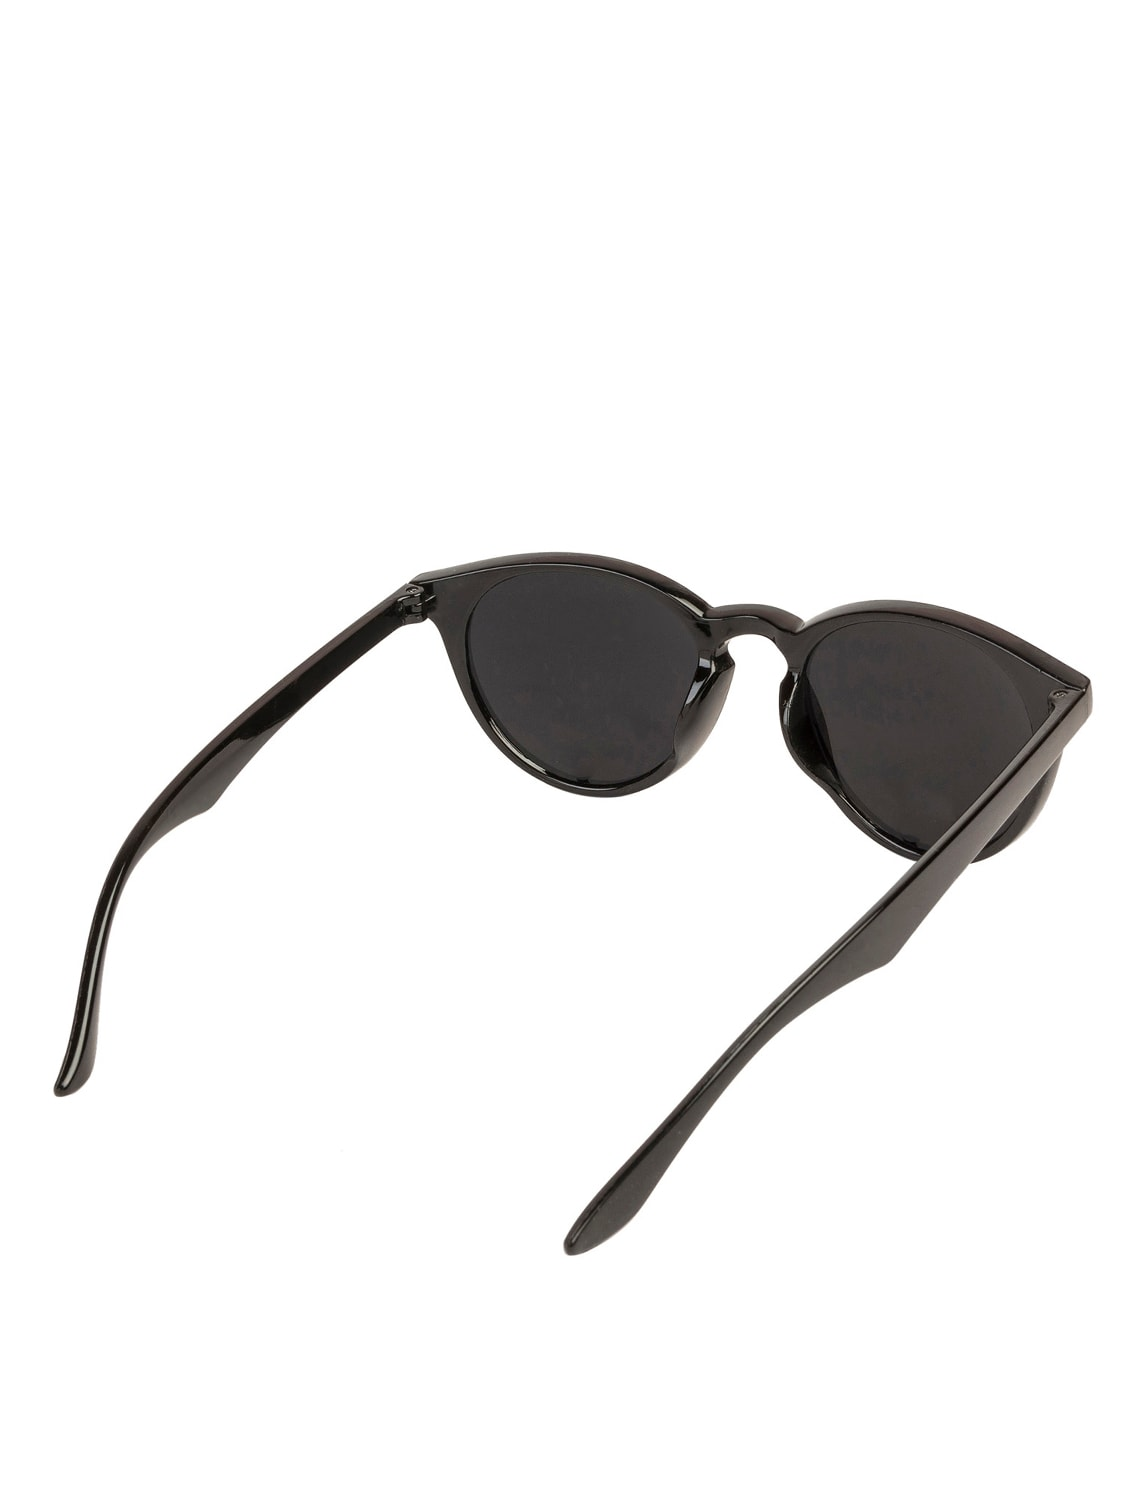 13b6b98b64 Buy Arzonai Black Target Oval Unisex Uv Protection Sunglasses  ma-303-s3    by Arzonai - Online shopping for Men Sunglasses in India